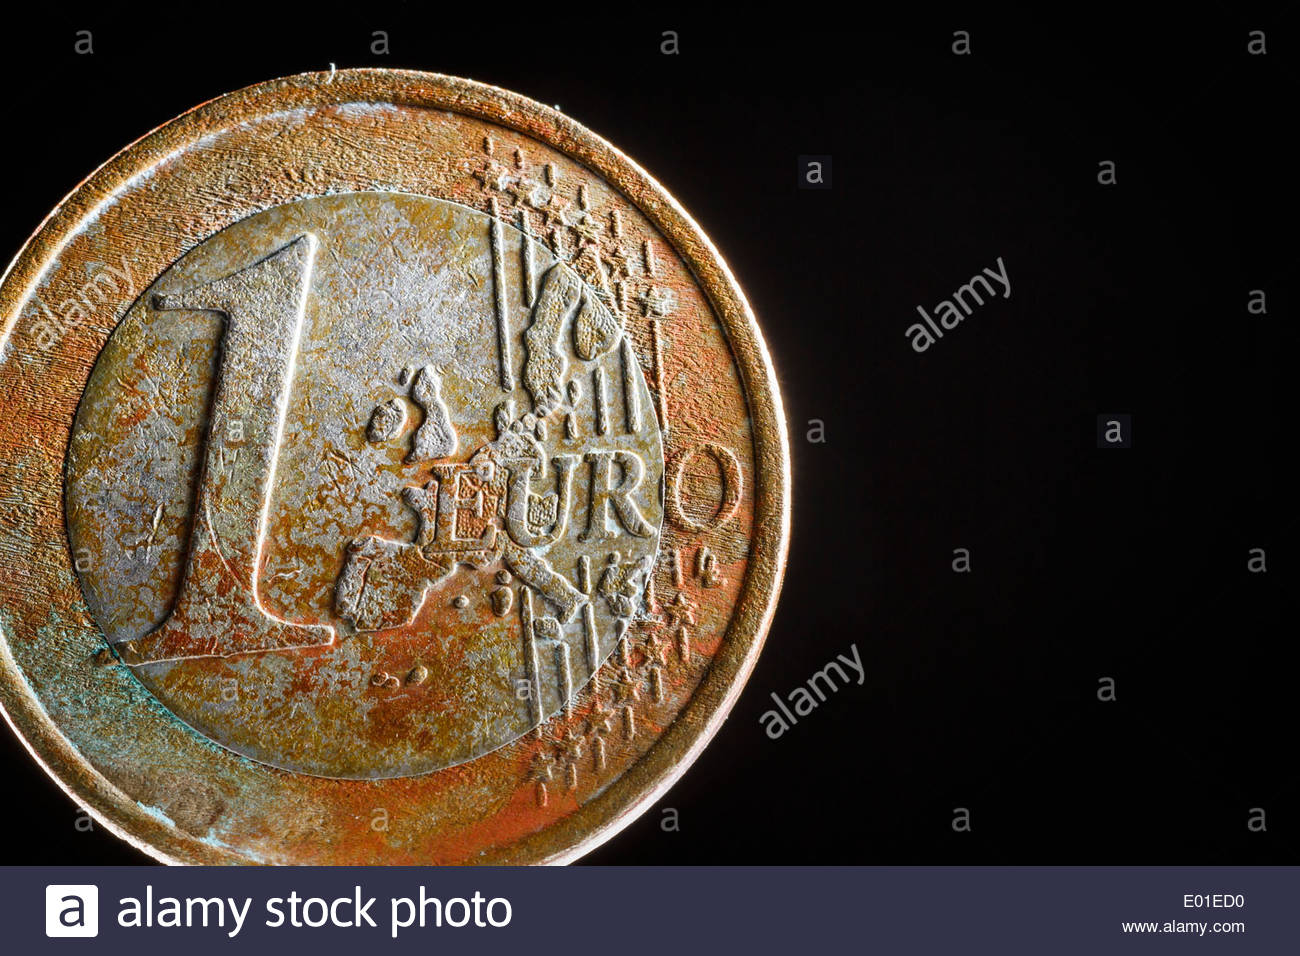 Rusty one-euro coin - Stock Image